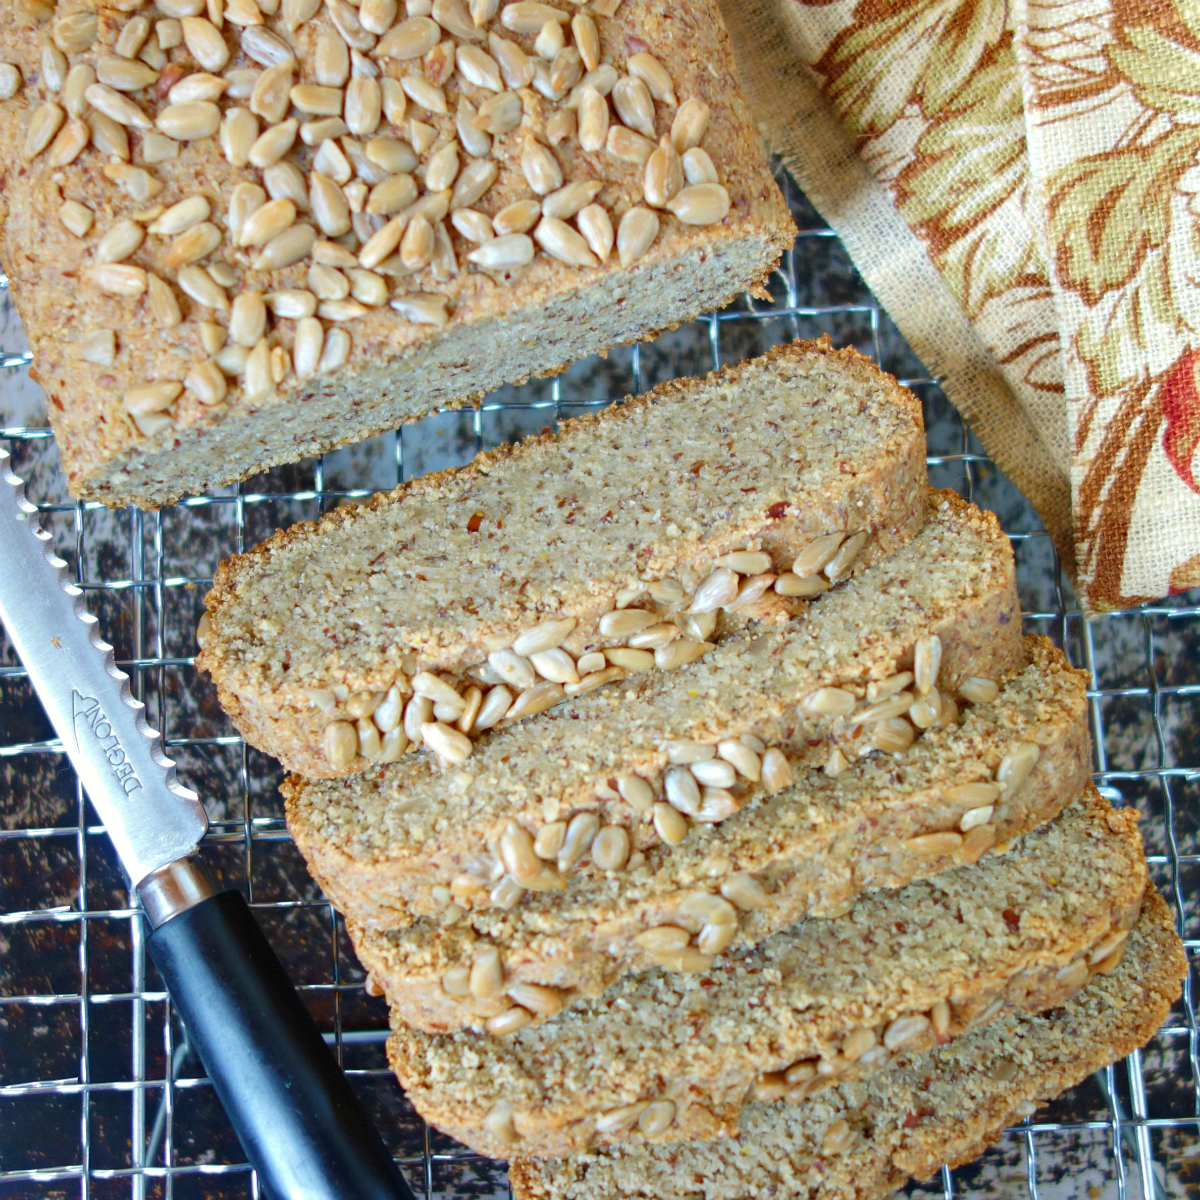 sunflower seed bread on a metal cooling rack with a bread knife and floral napkin alongside